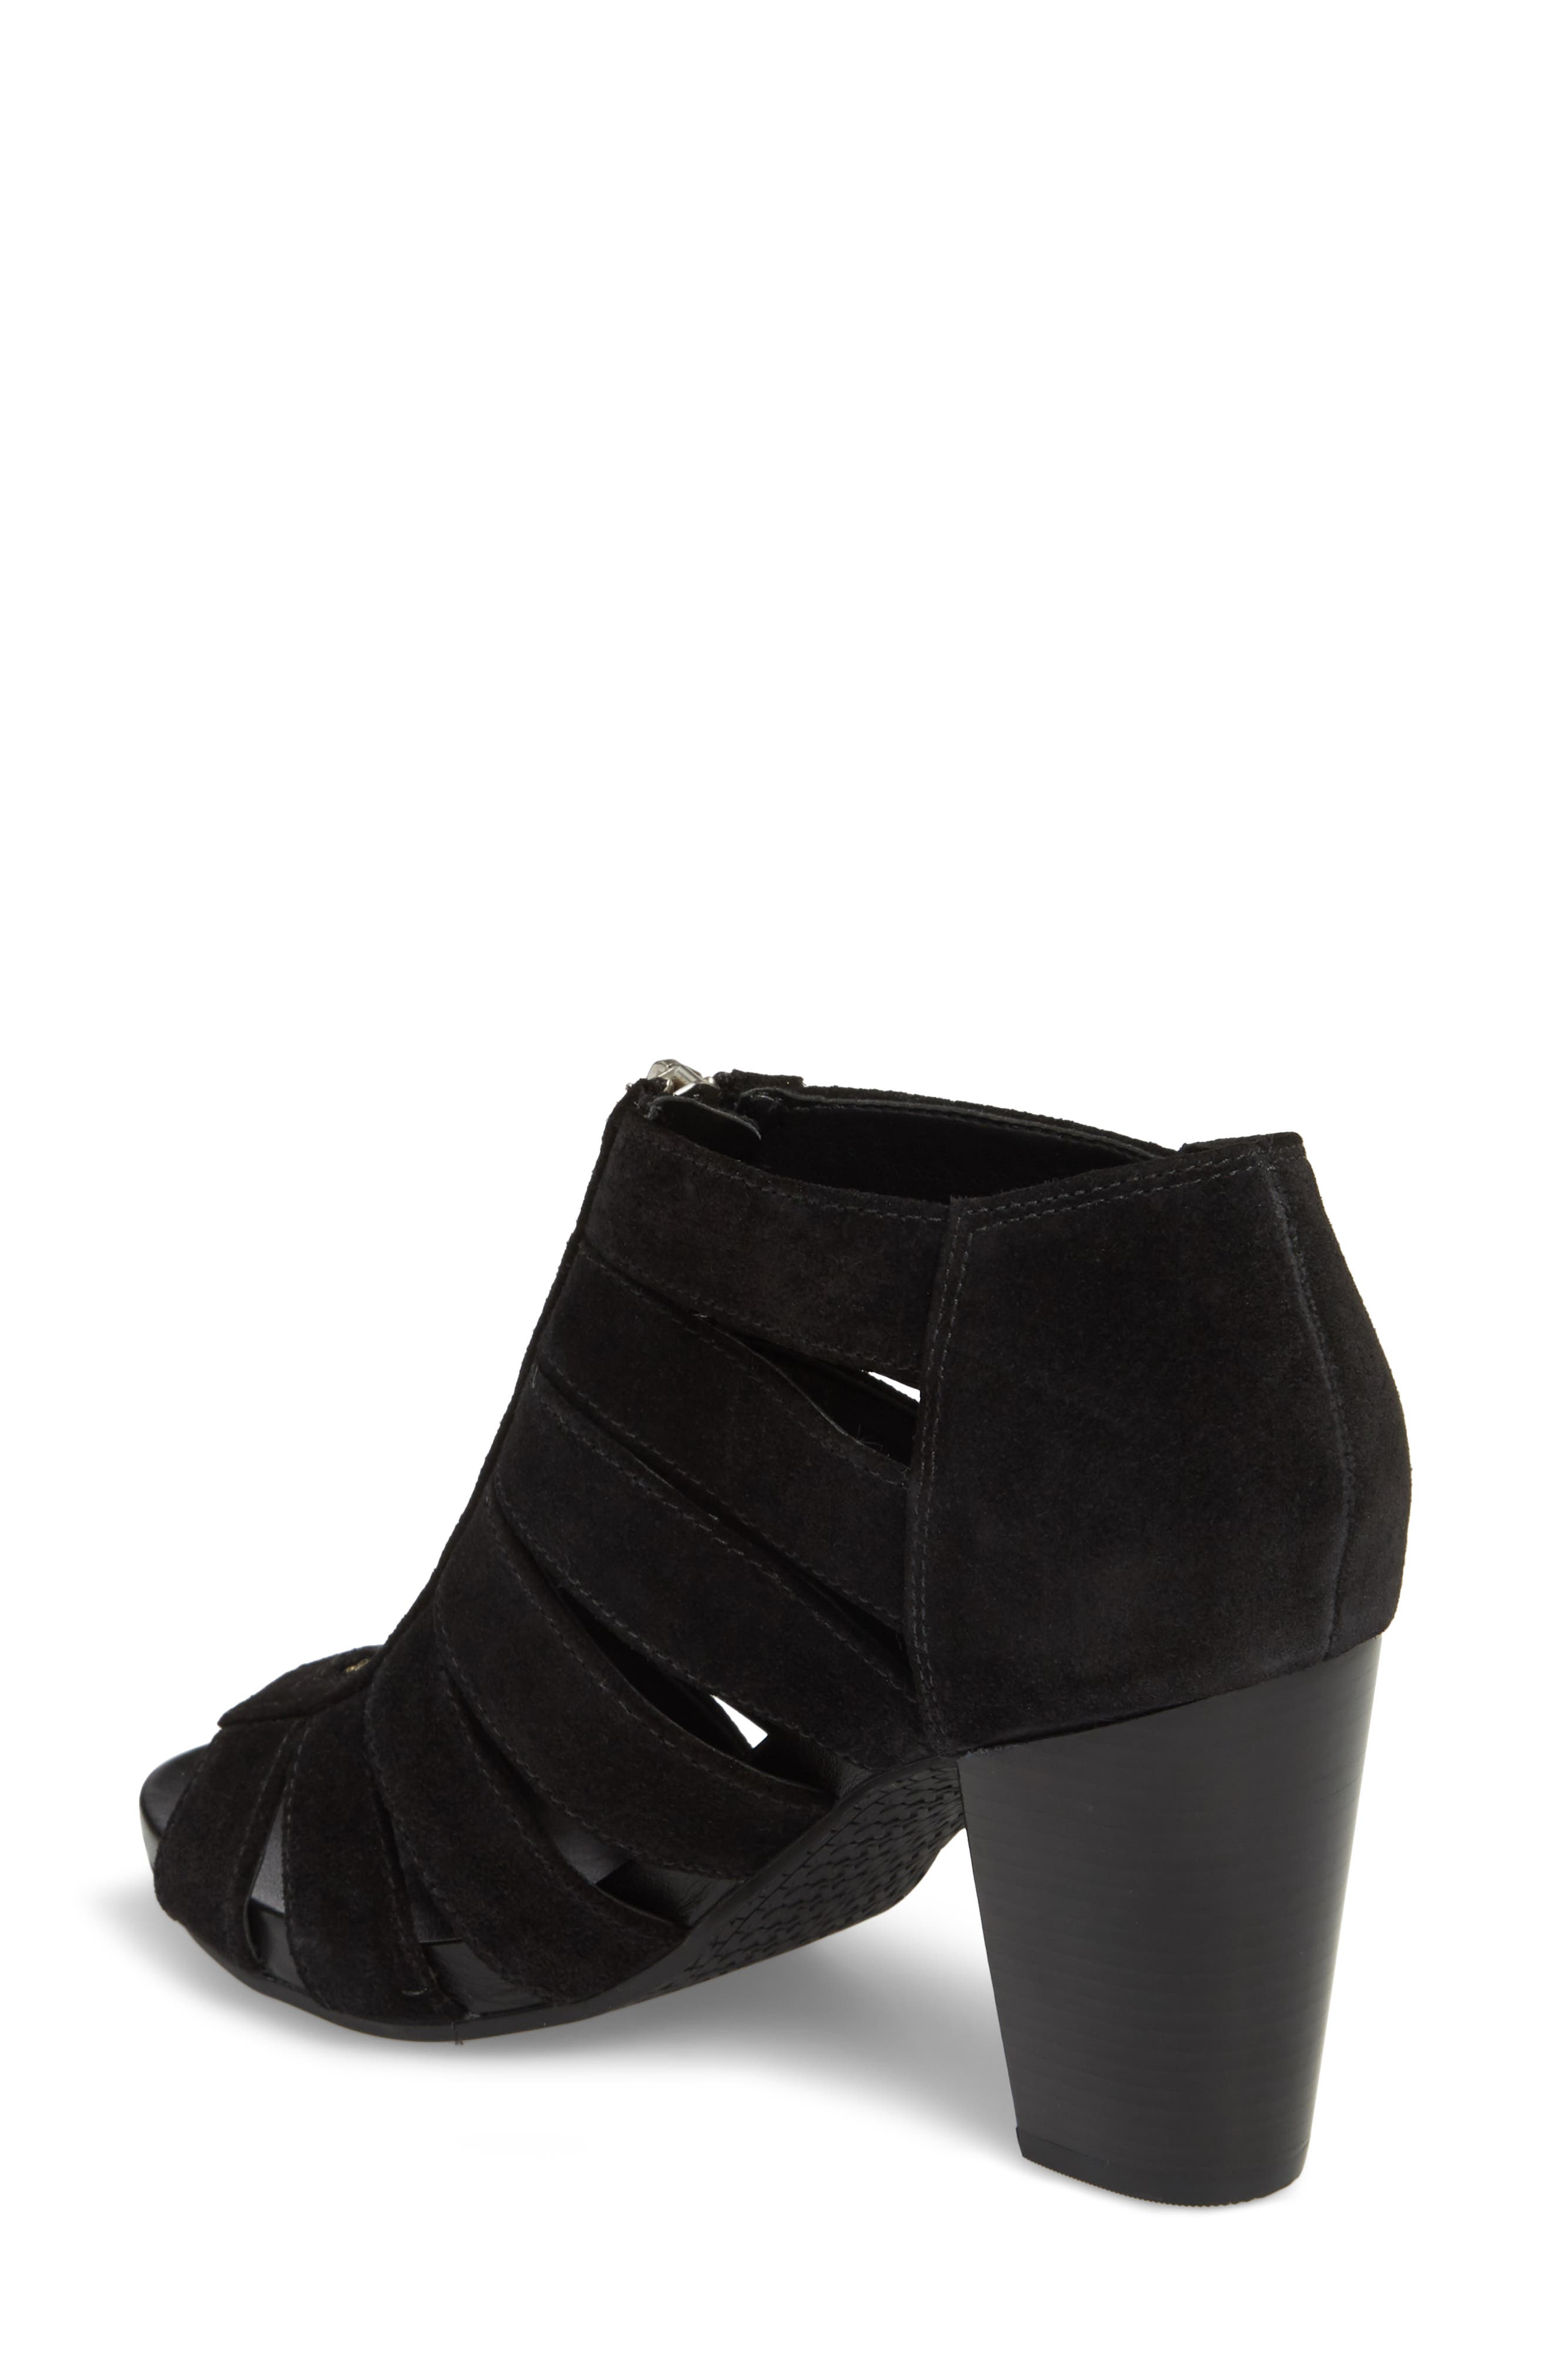 Sherry Cage Bootie,                             Alternate thumbnail 4, color,